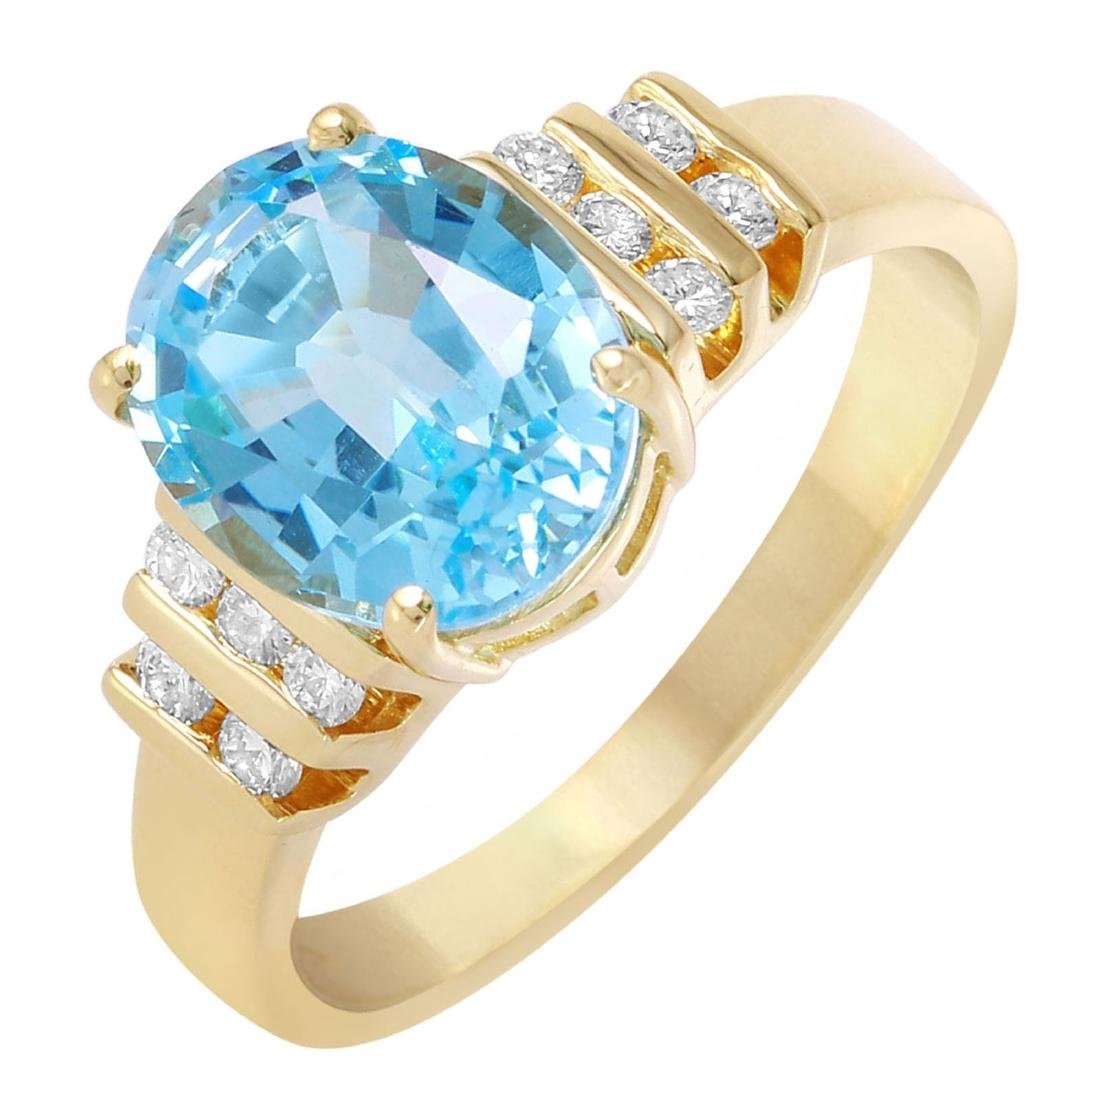 14KT Yellow Gold Topaz and Diamond Ring